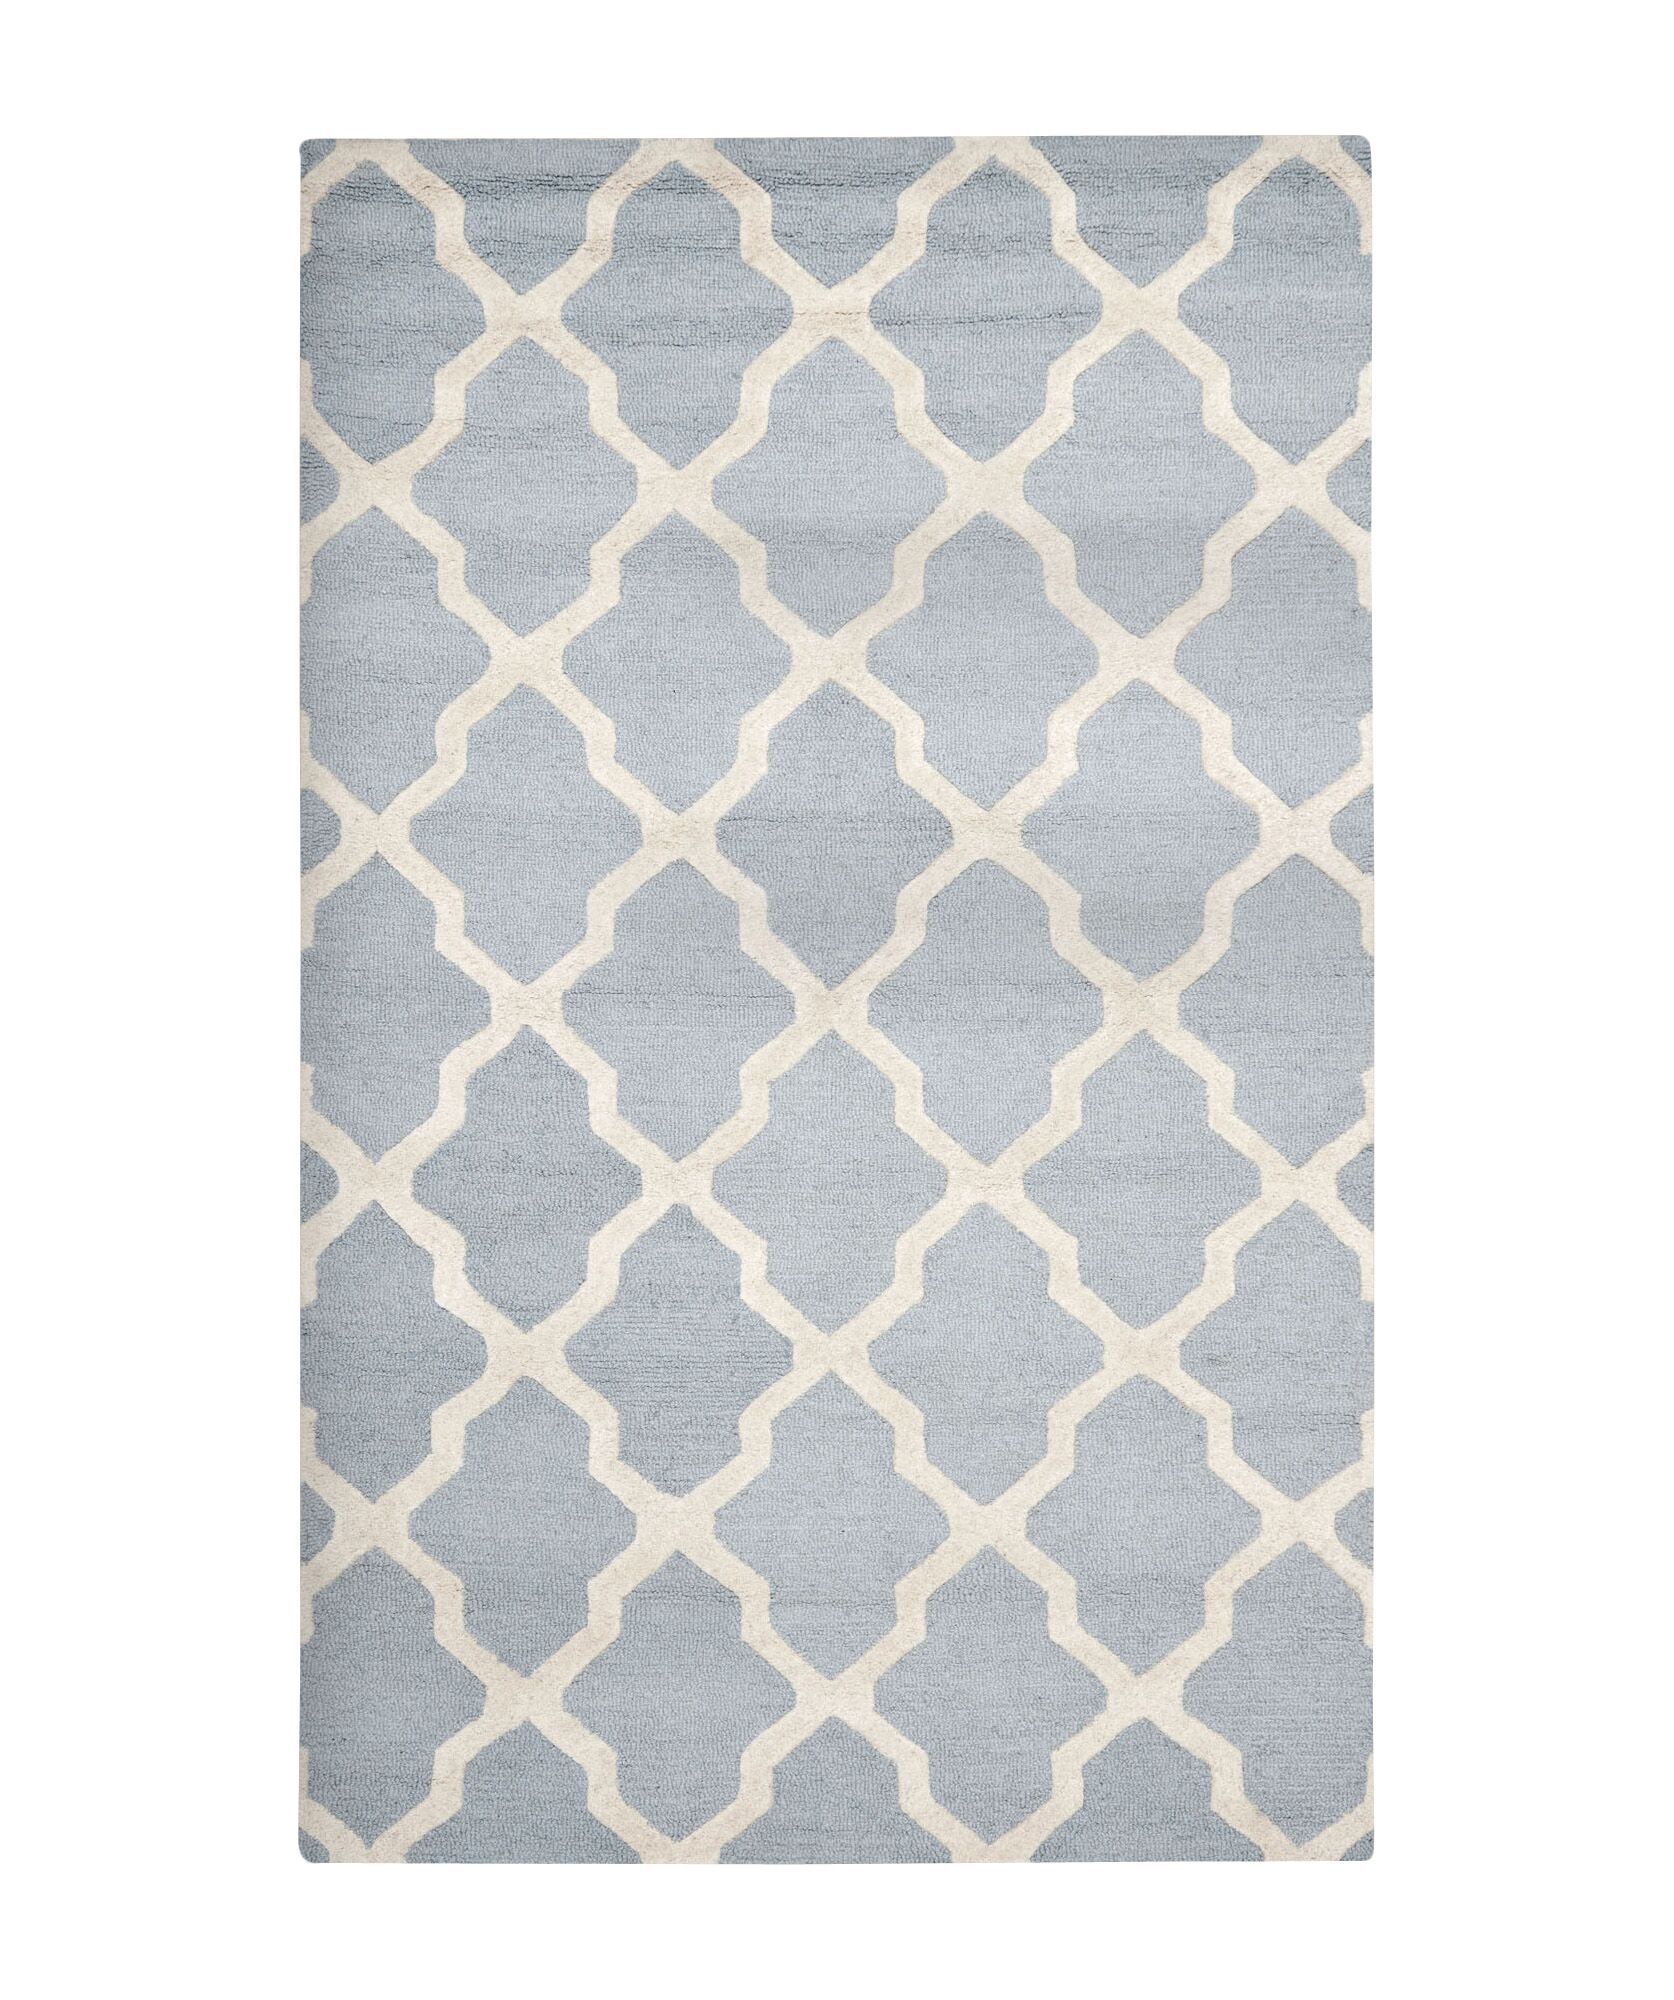 Sugar Pine Hand-Tufted Wool Blue/Ivory Area Rug Rug Size: Rectangle 4' x 6'